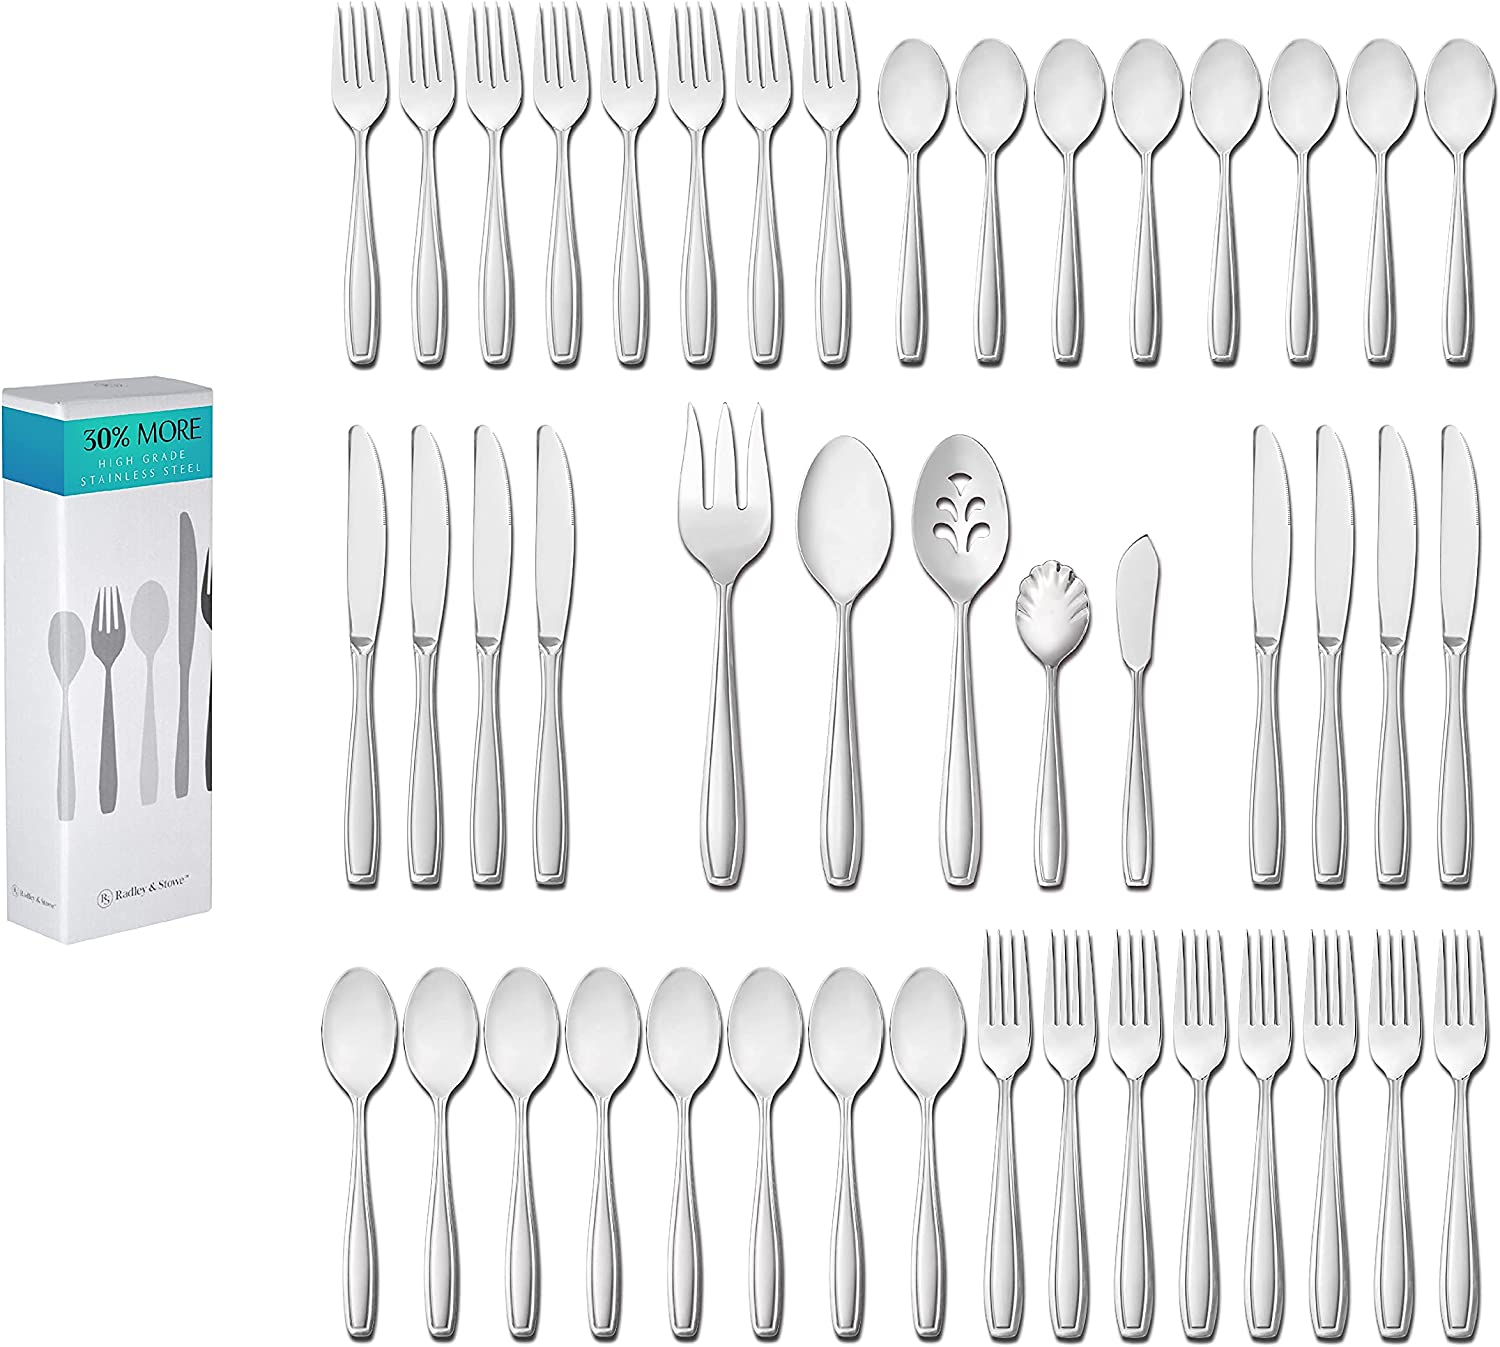 60-Piece Flatware Durable Stainless Steel Silverware S Max 40% OFF + Special Campaign 5-Piece